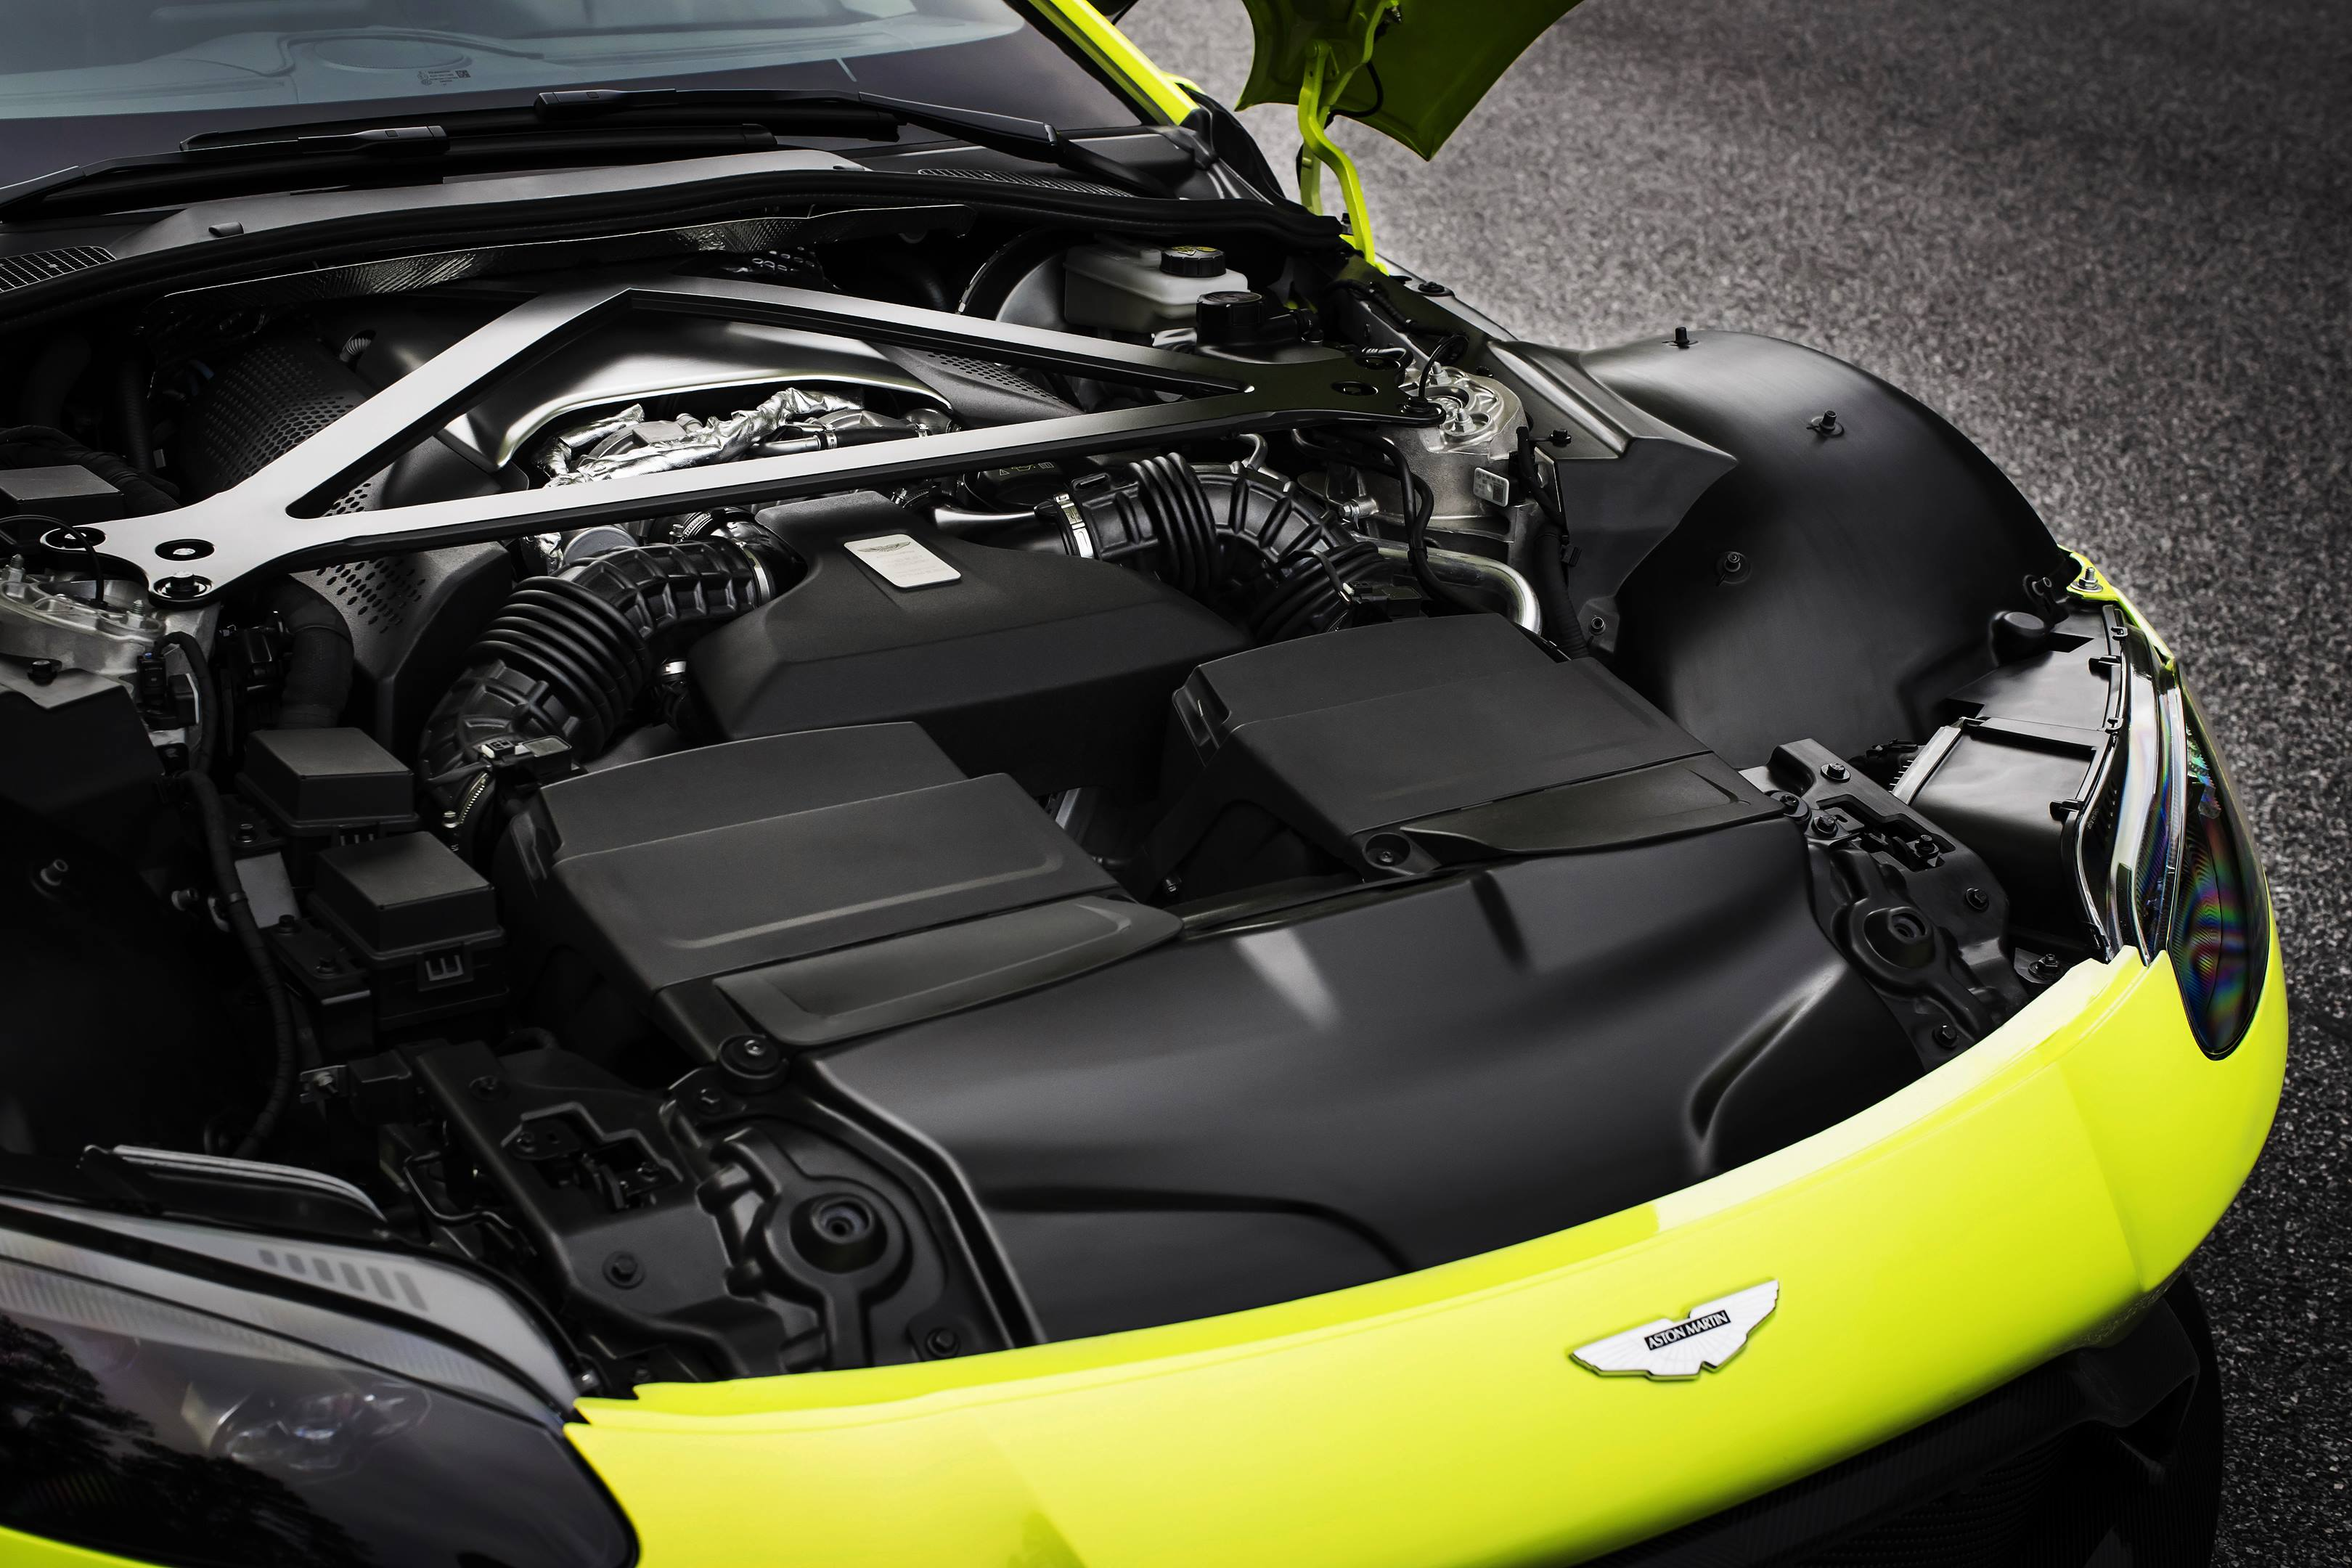 aston martin v8 vantage turbo 2017 engine